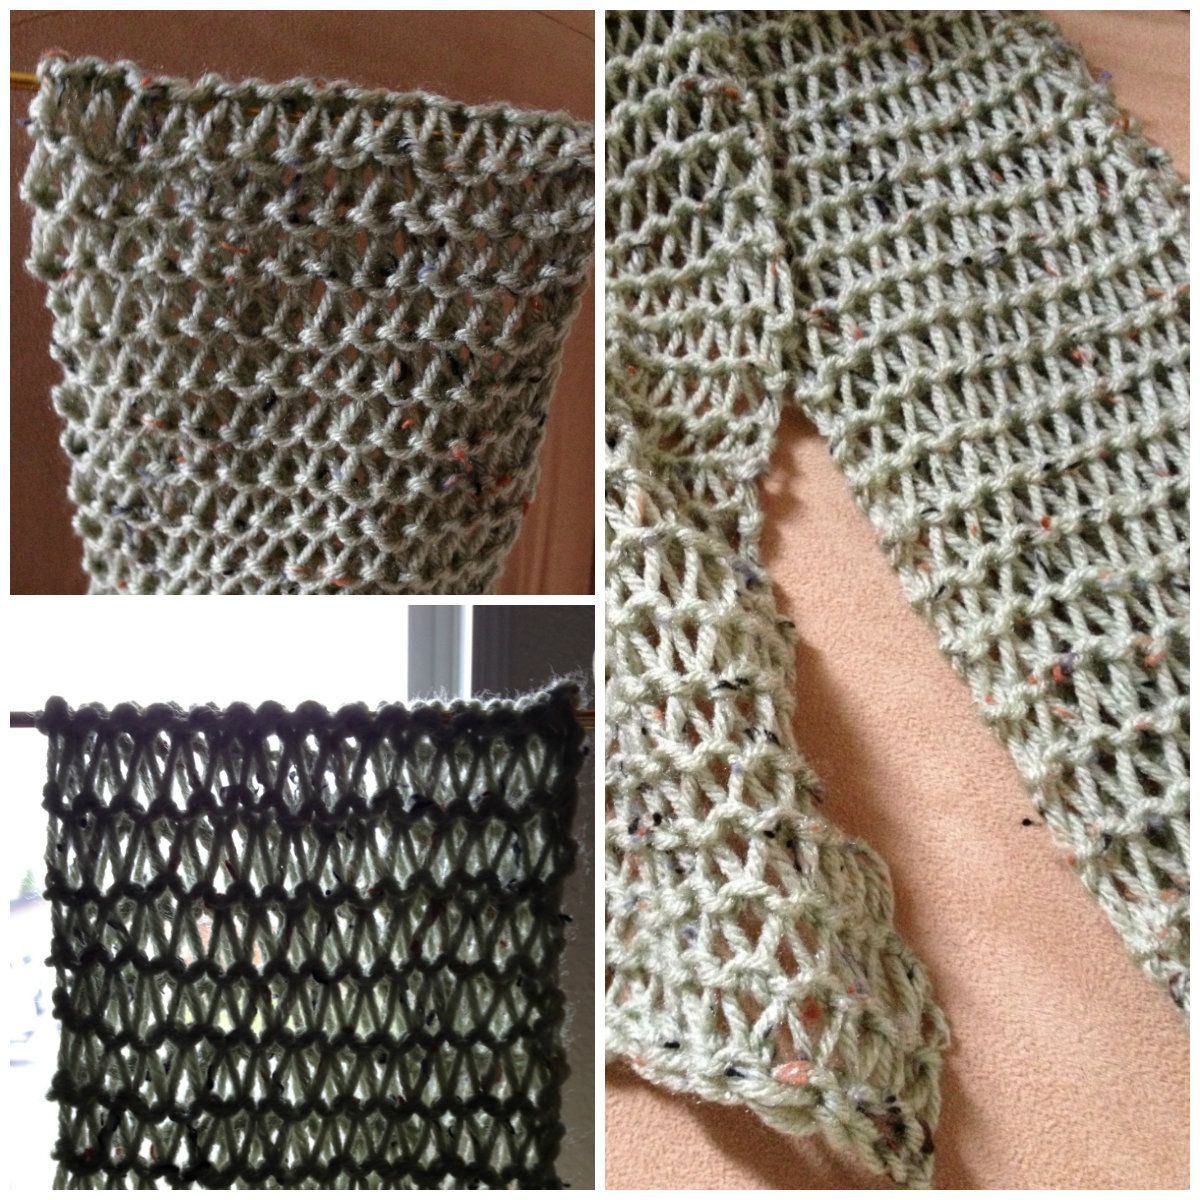 Openwork waistcoat with knitting needles - classic, which remains popular